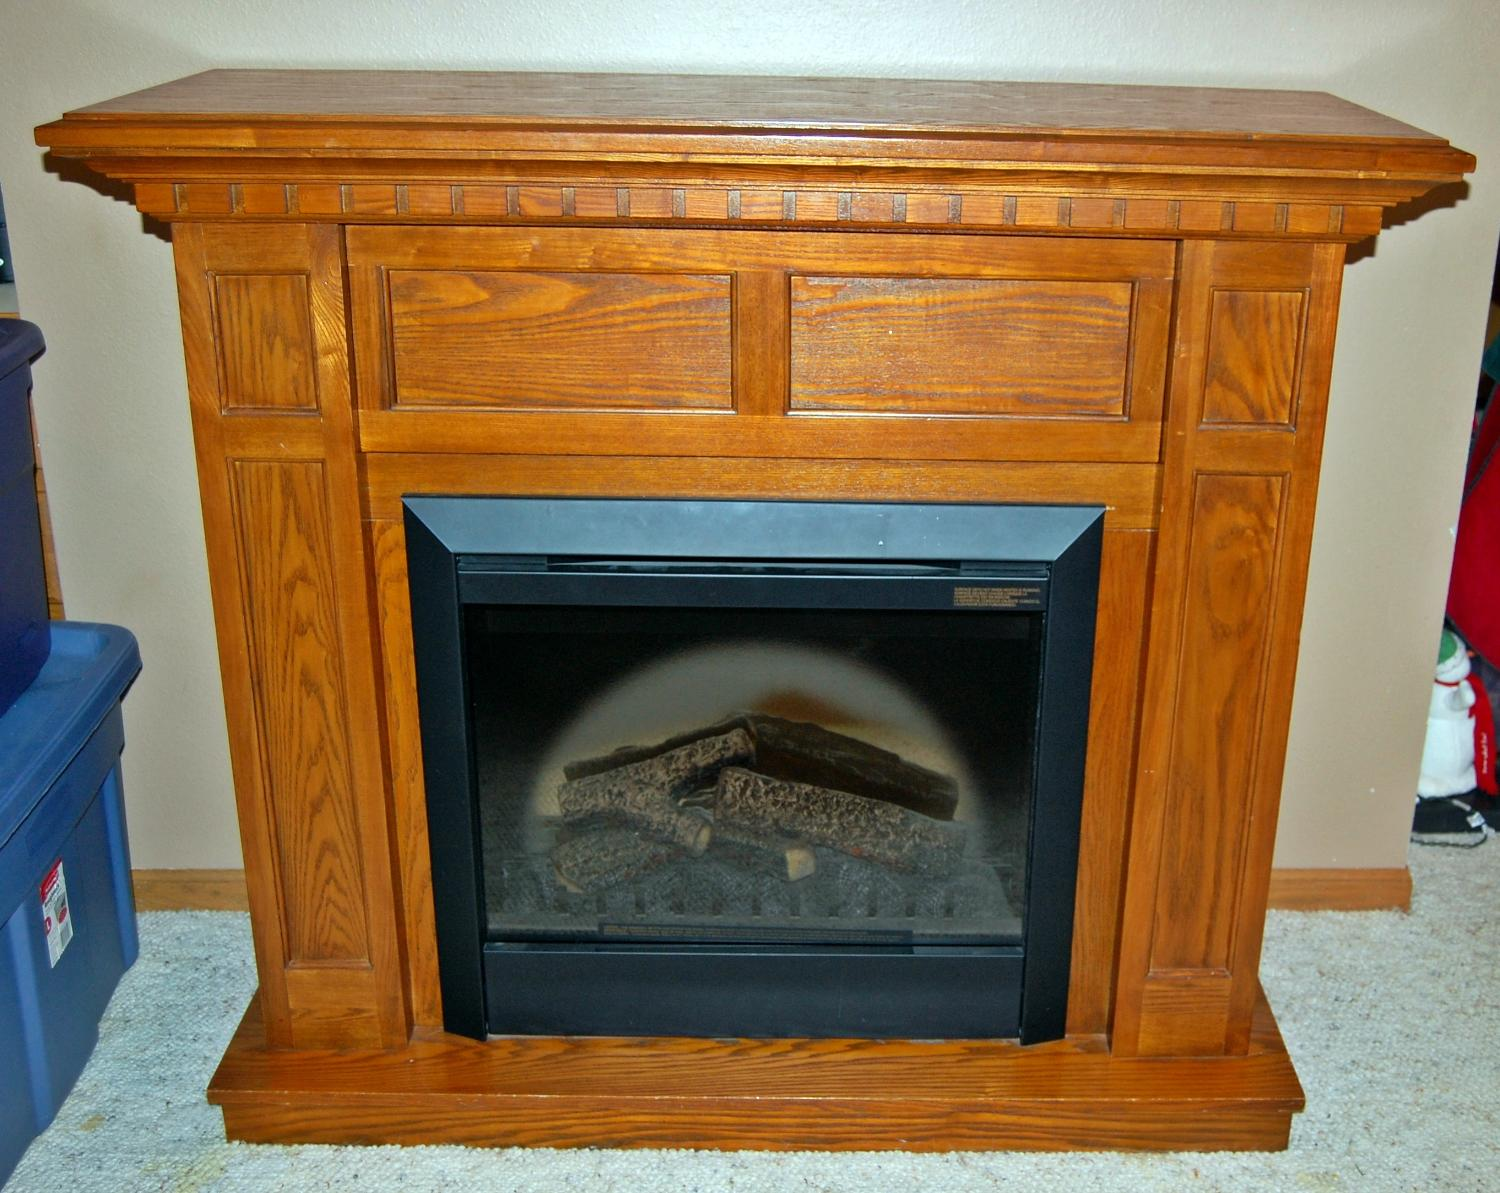 Best Oak Electric Fireplace For Sale In Minot North Dakota For 2017